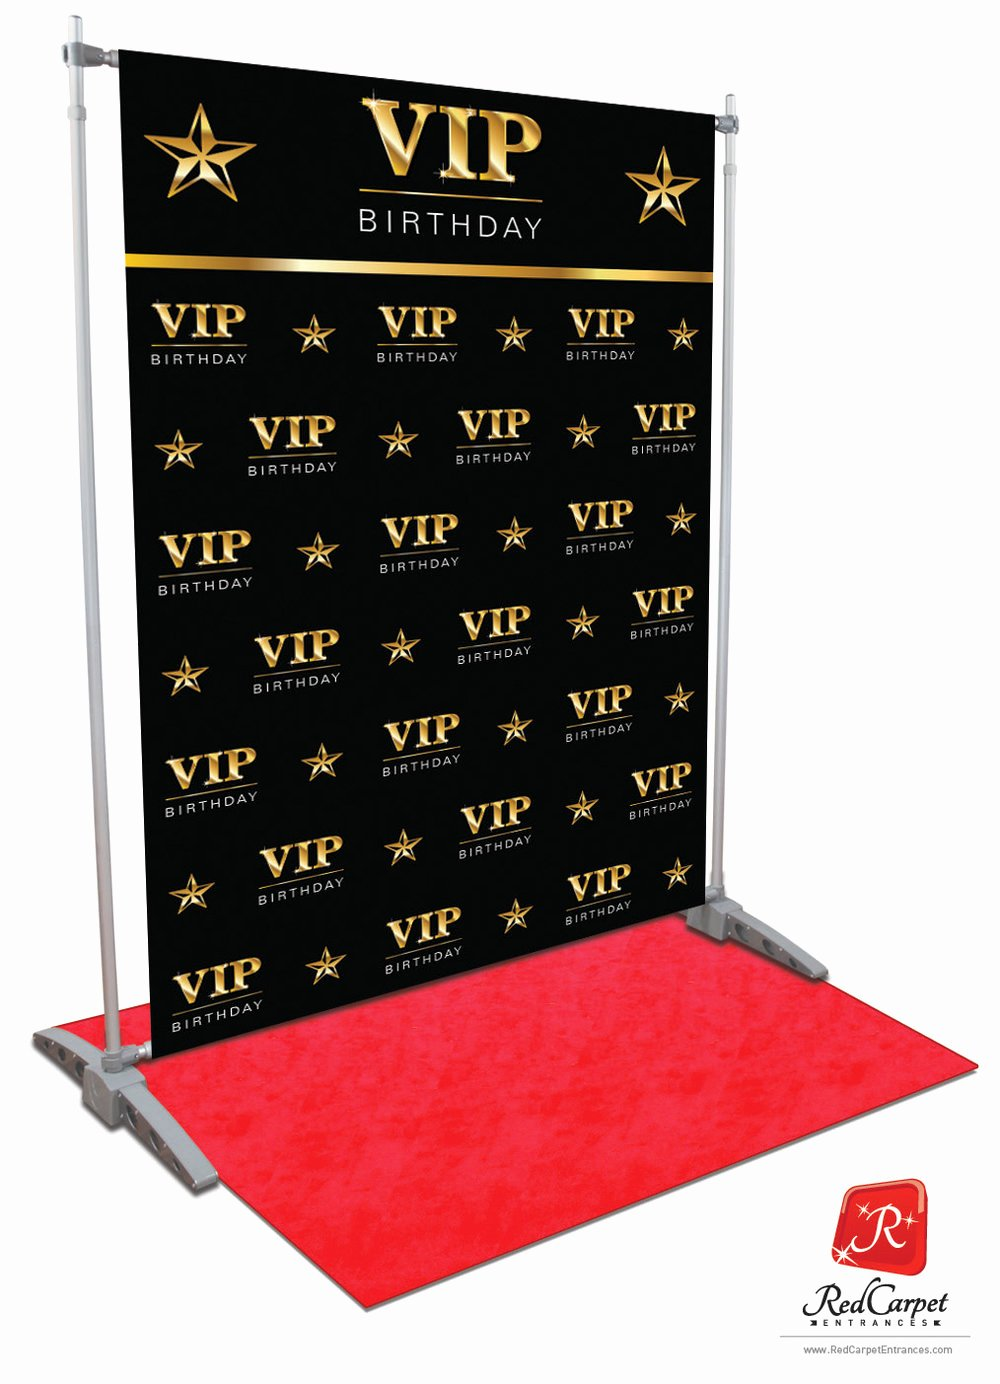 Red Carpet Backdrop Template Awesome Red Carpet Birthday Backdrops — Red Carpet Runner & Backdrop Distributor